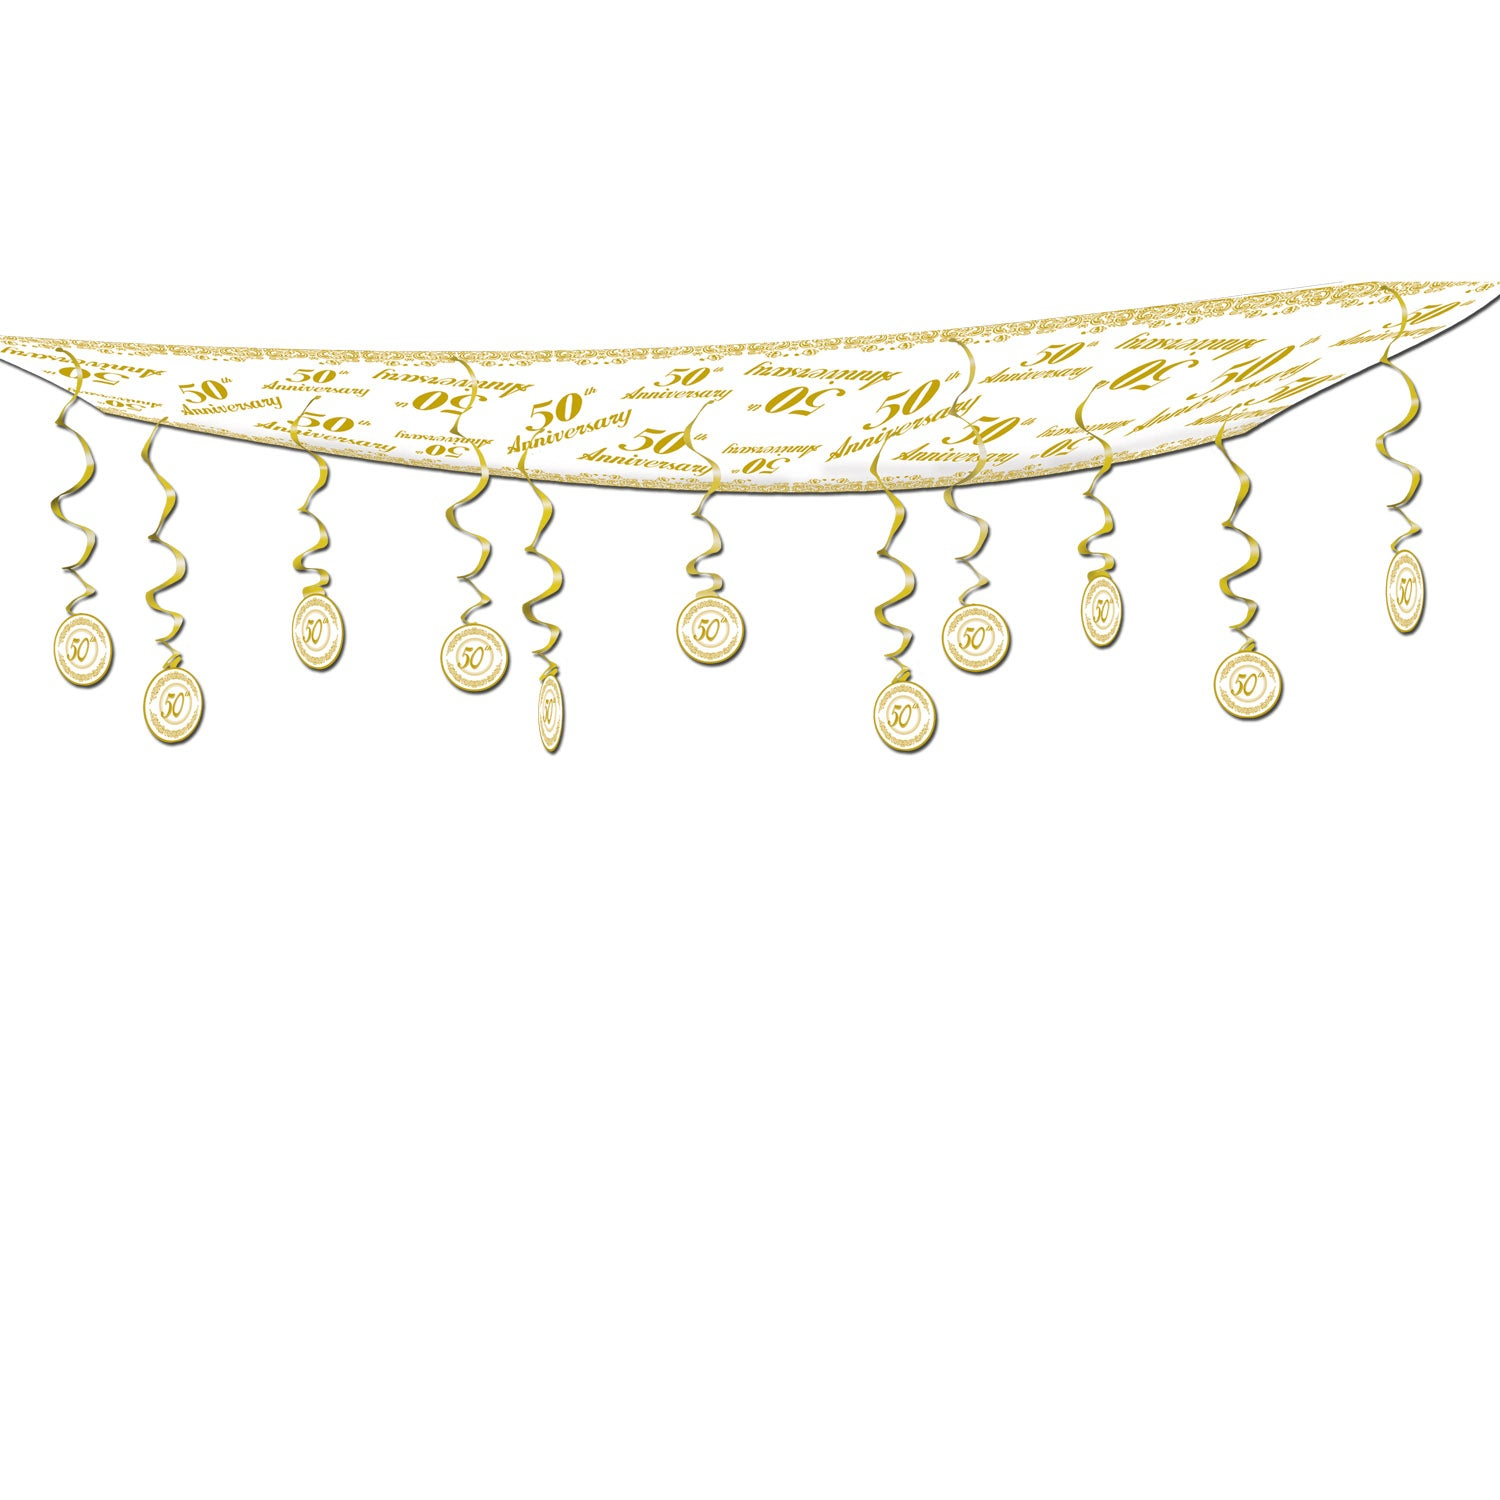 50th Anniversary Ceiling Decor by Beistle - Anniversary Theme Decorations